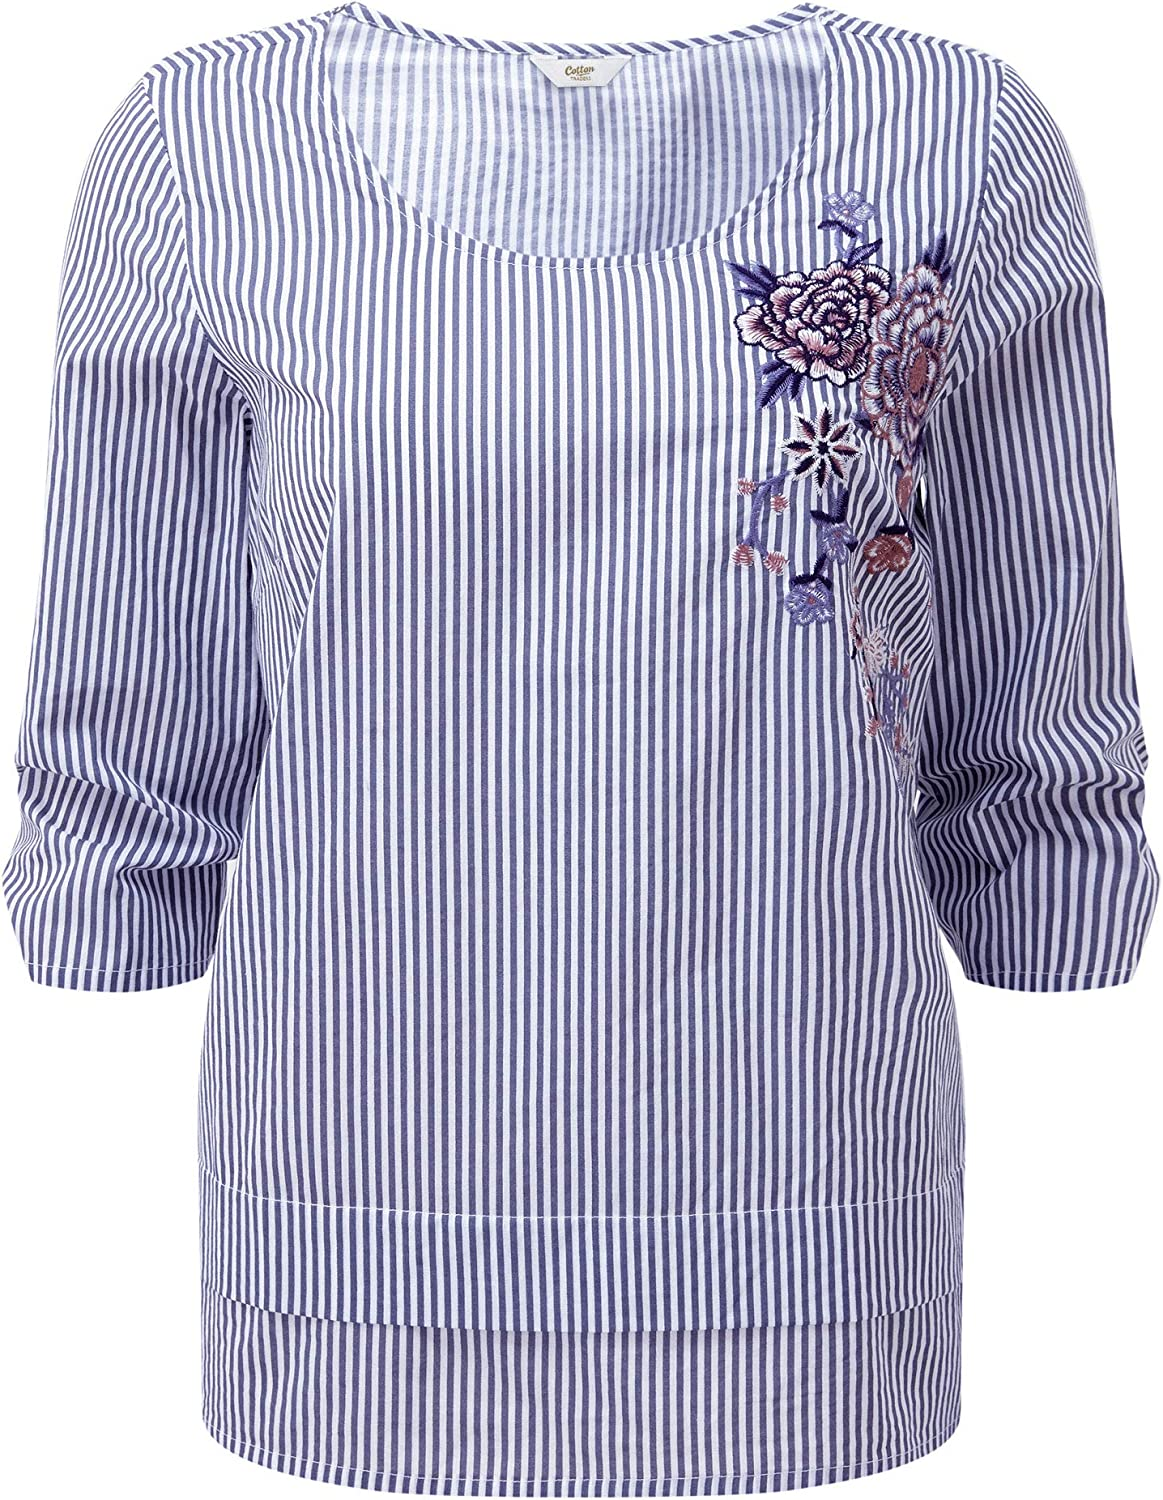 Cotton Traders Womens Ladies Casual Scoop Neck Embroidered Printed Stripe Top